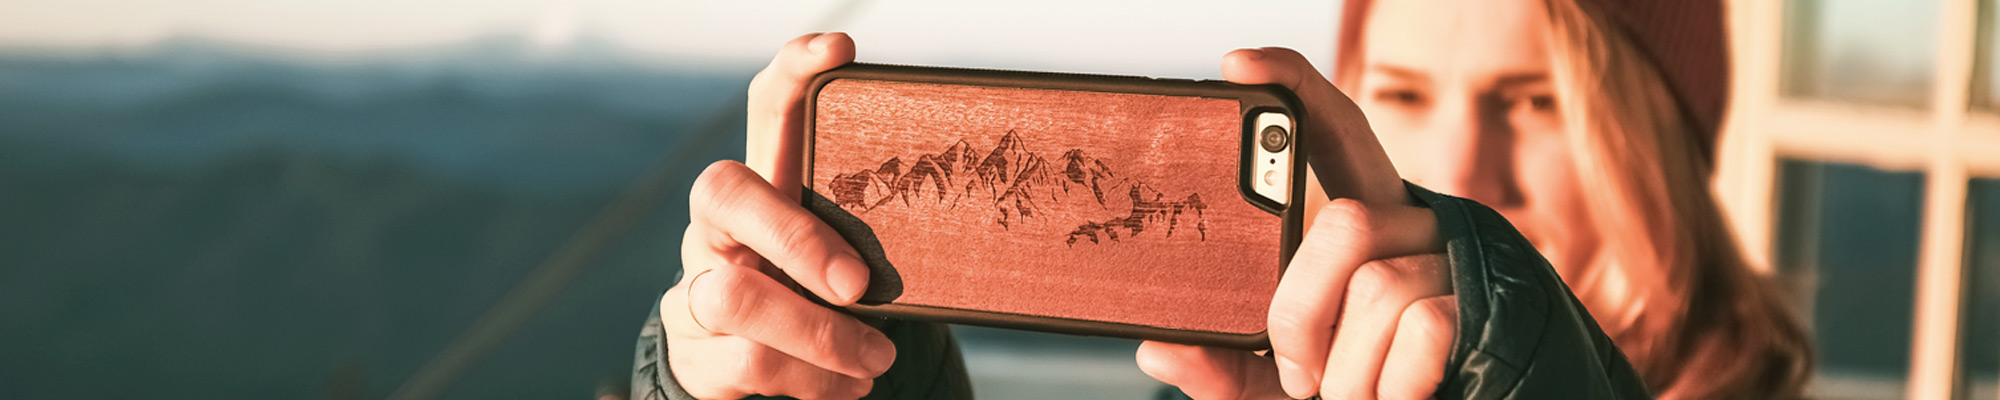 Engraved Wood iPhone 6/7 Engraved Cases